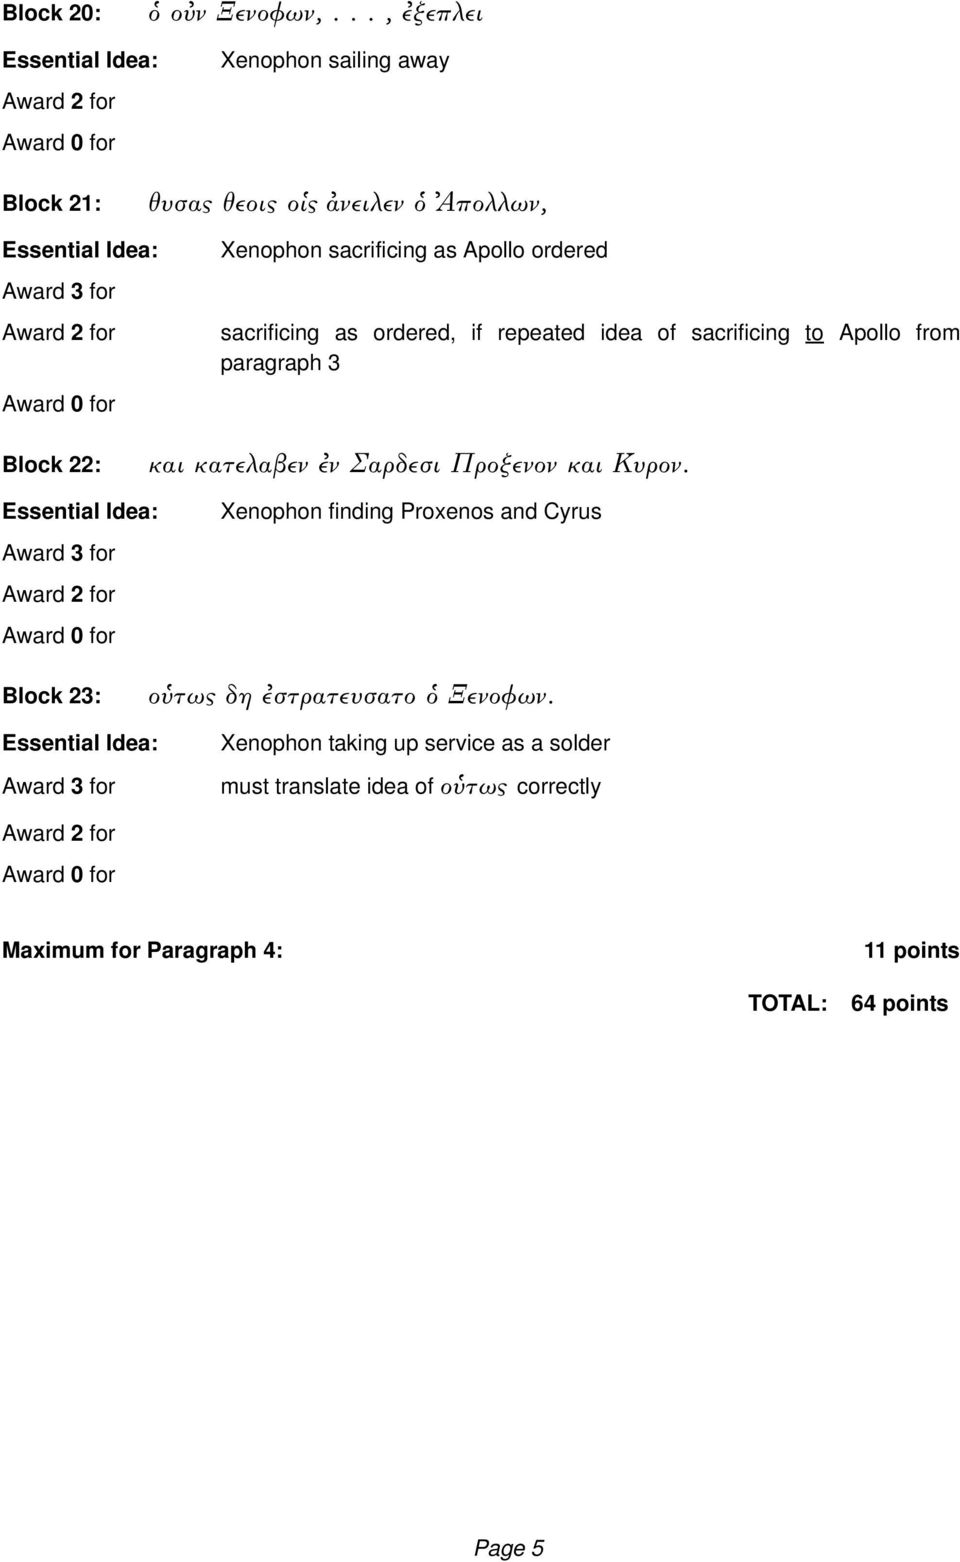 sacrificing as ordered, if repeated idea of sacrificing to Apollo from paragraph 3 Block 22: και κατελαβεν ν Σαρδεσι